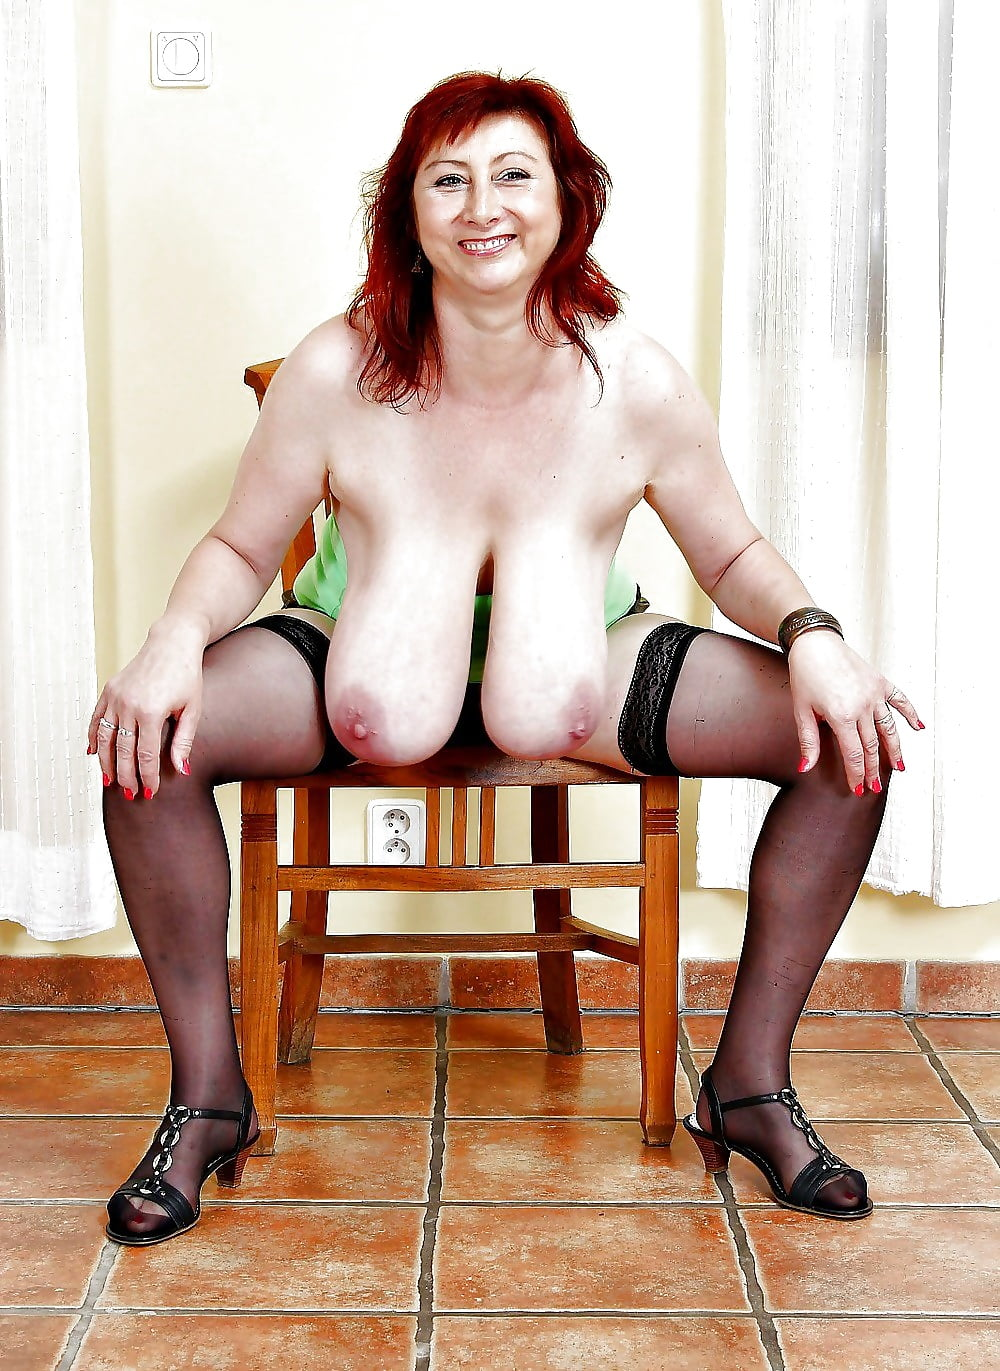 Big breasted nude mature women-3851